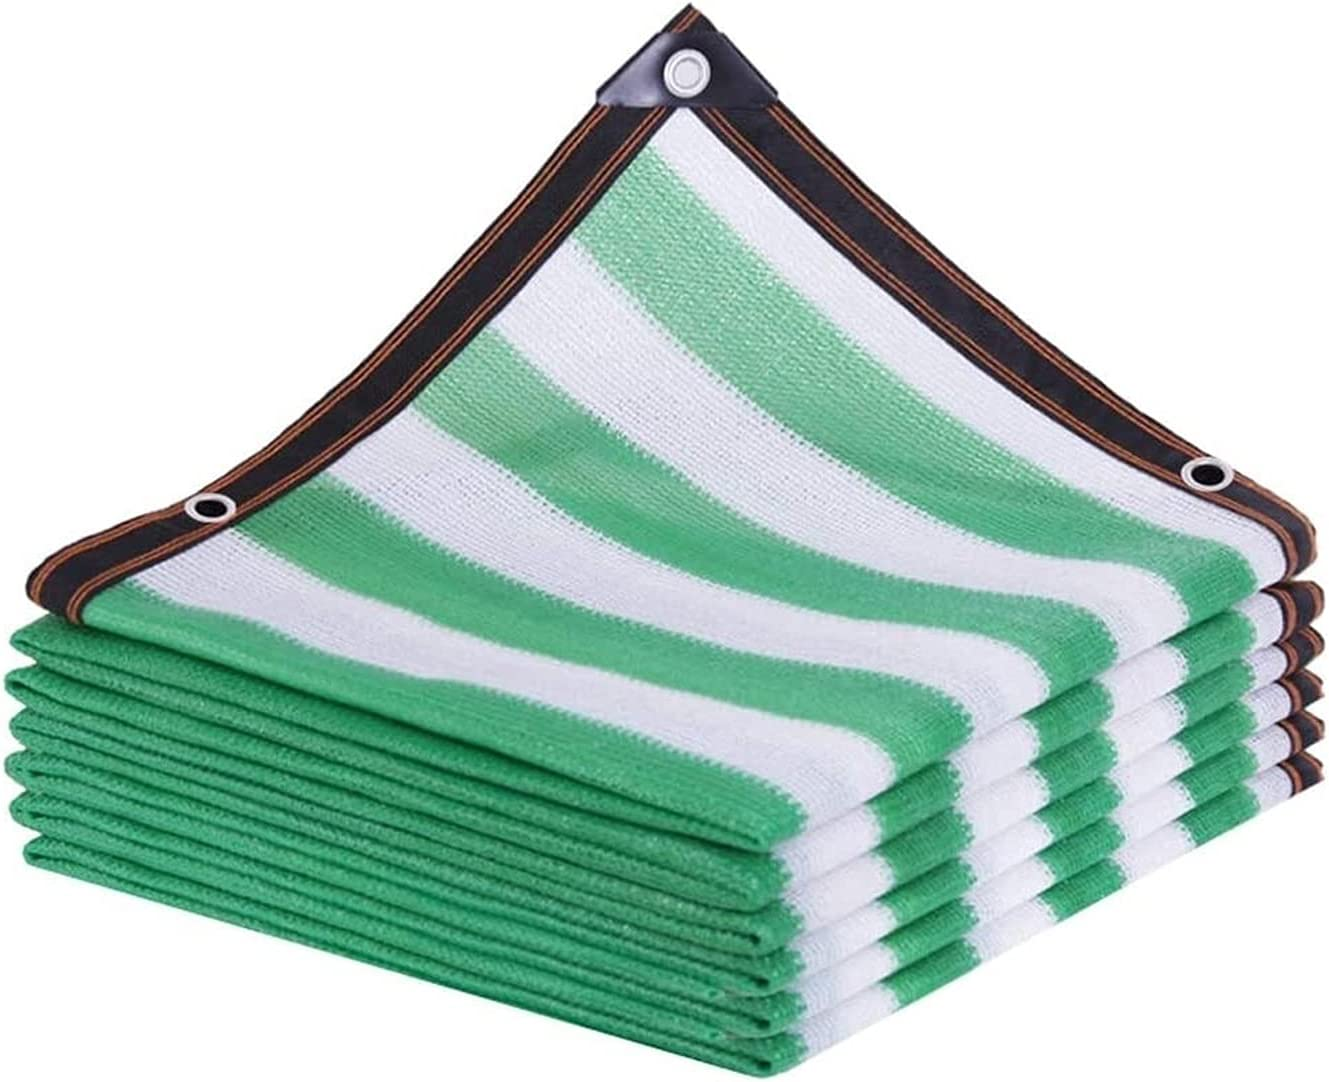 TYHZ Shade Cloth Net Shading Rate 5 ☆ very popular New arrival Green an 85%